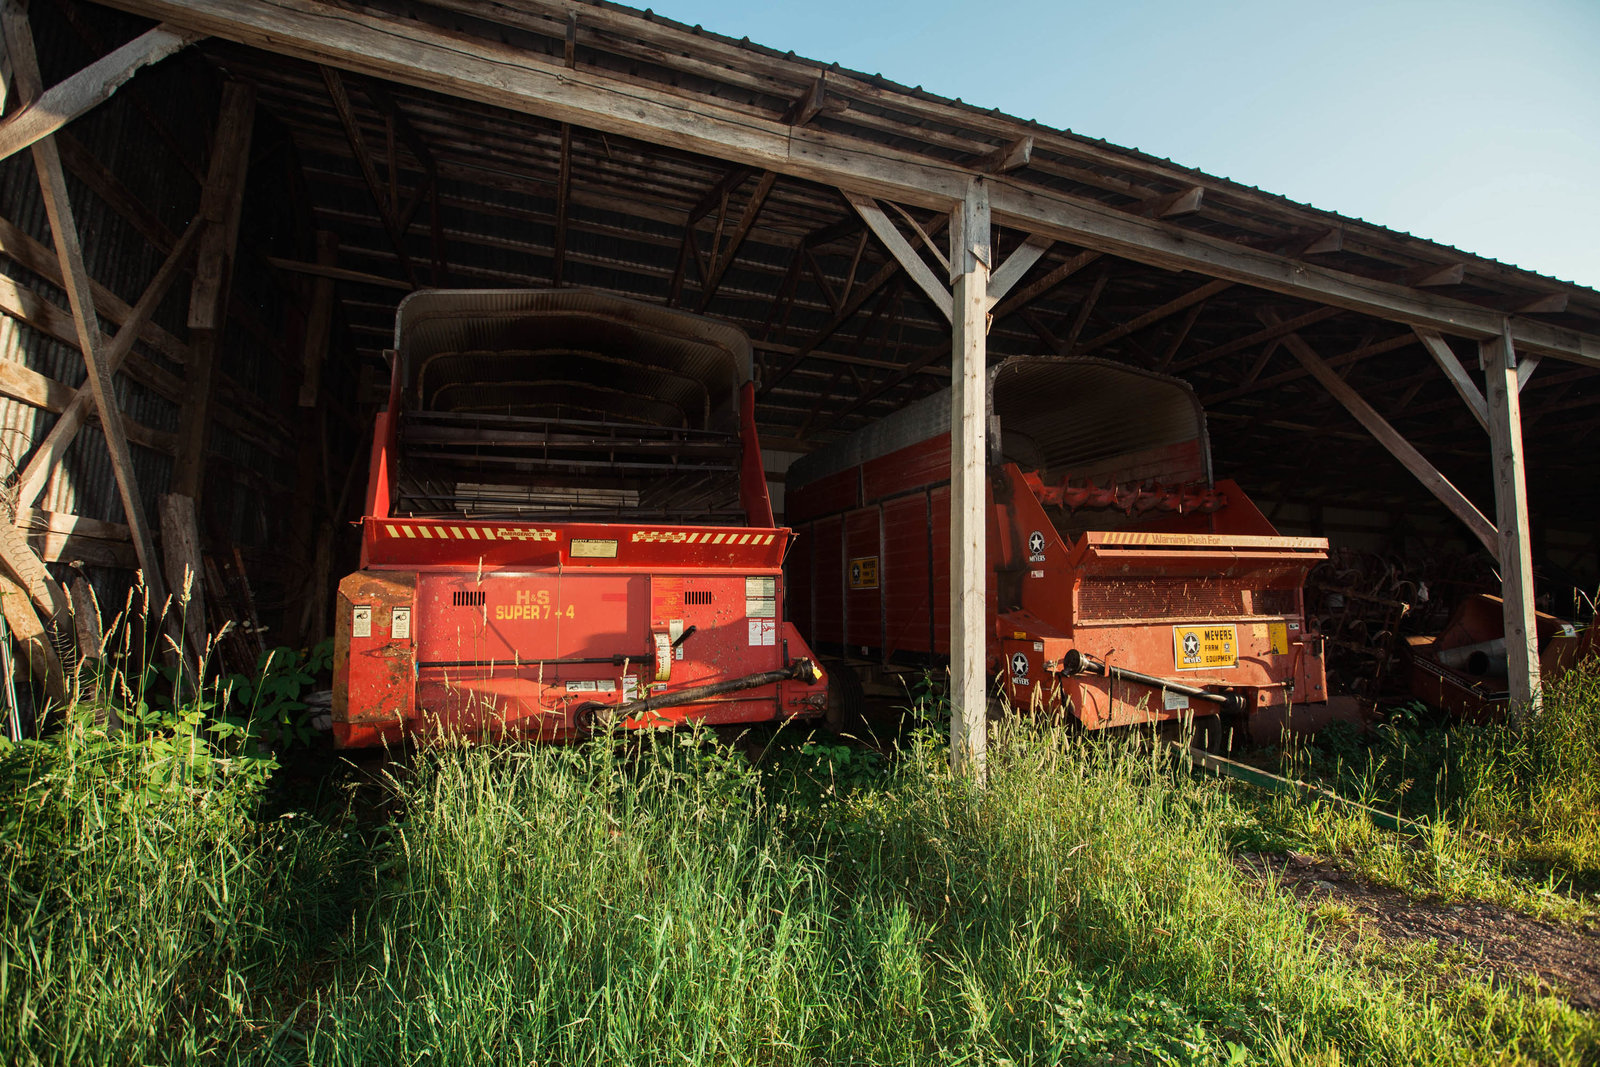 equipment-wisconsin-farm-country-nature-kate-timbers-photography-2215